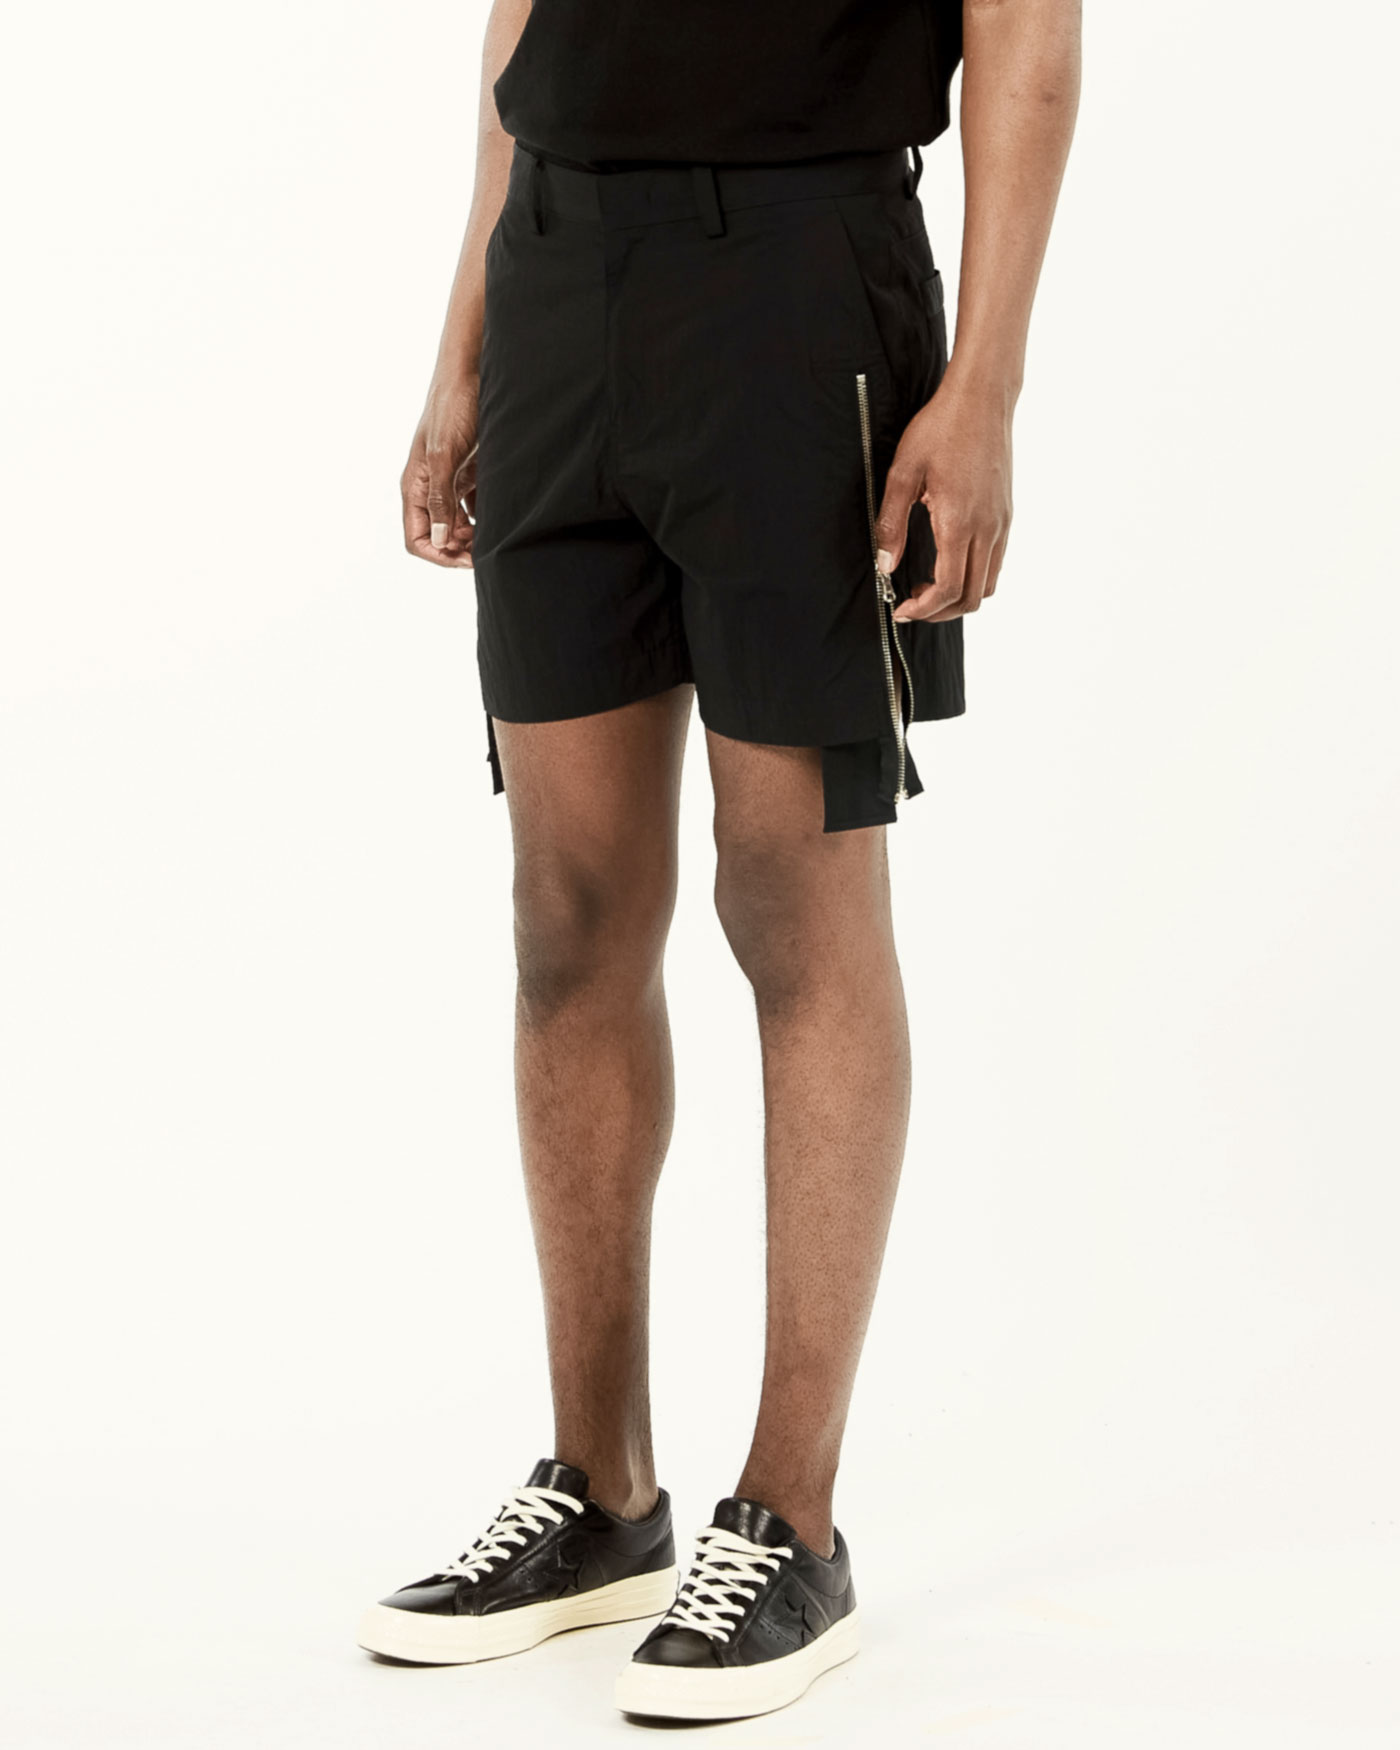 Zipper Shorts Black